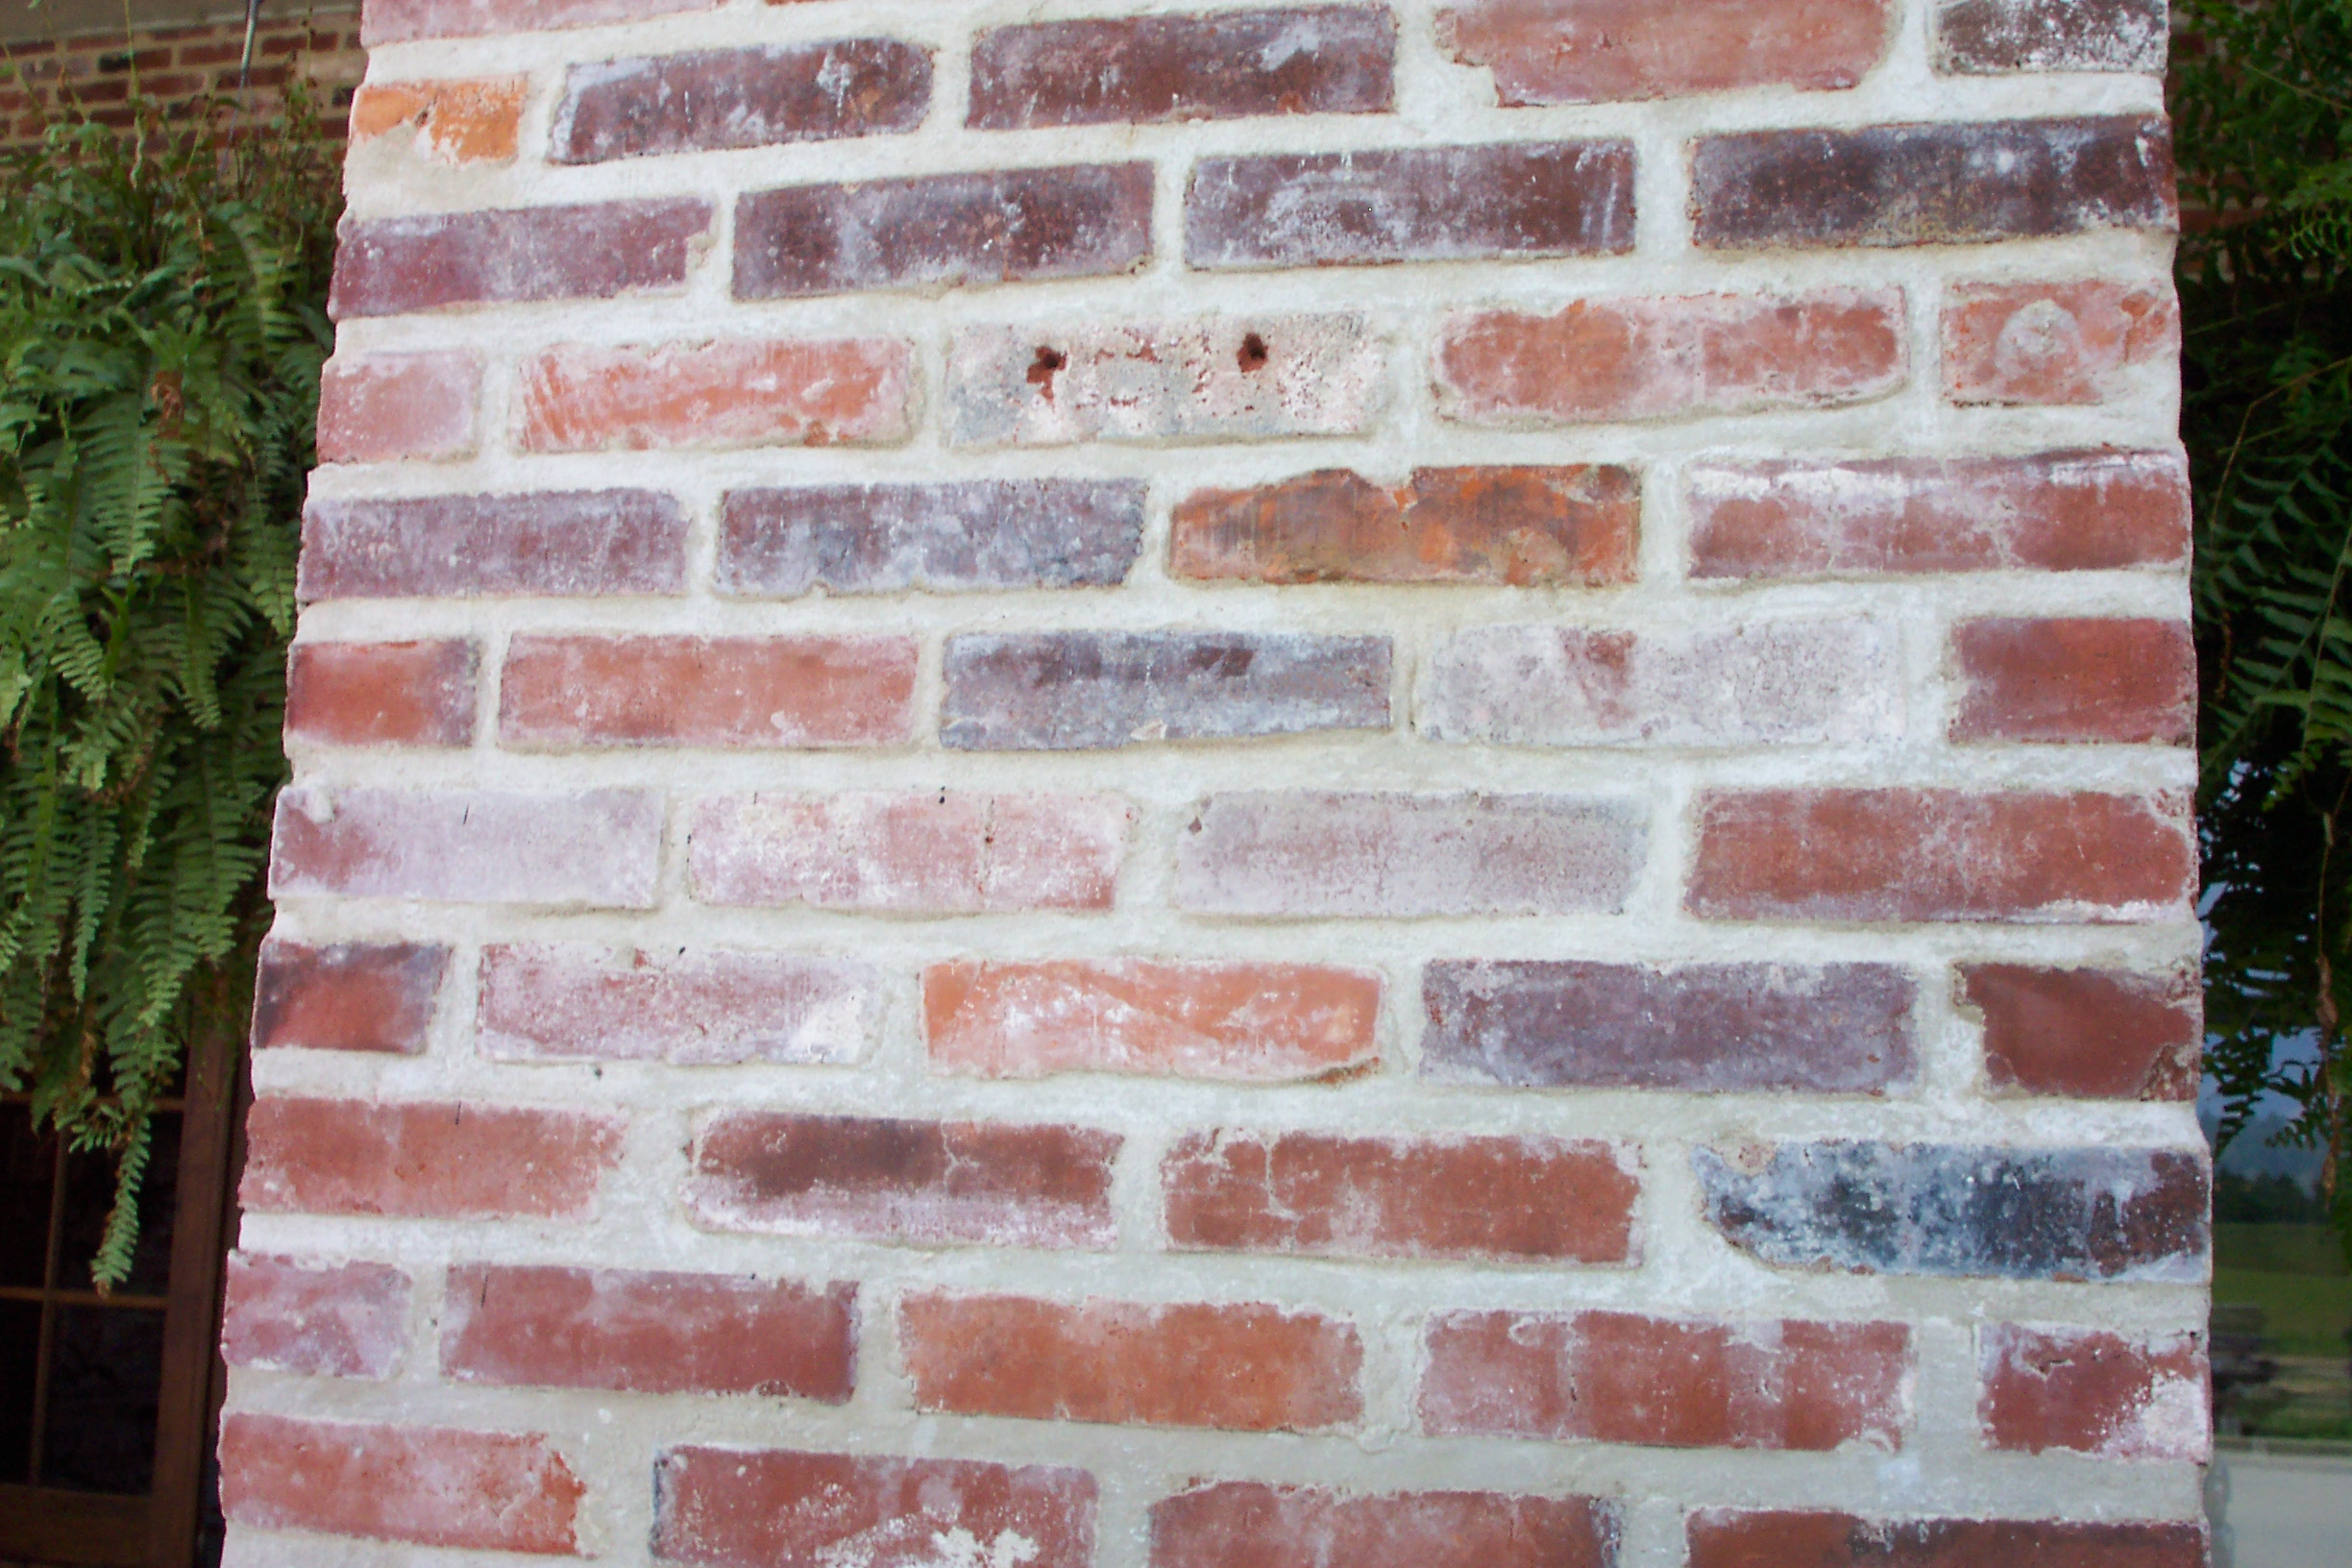 antique brick gallery suppliers of rare antique brick